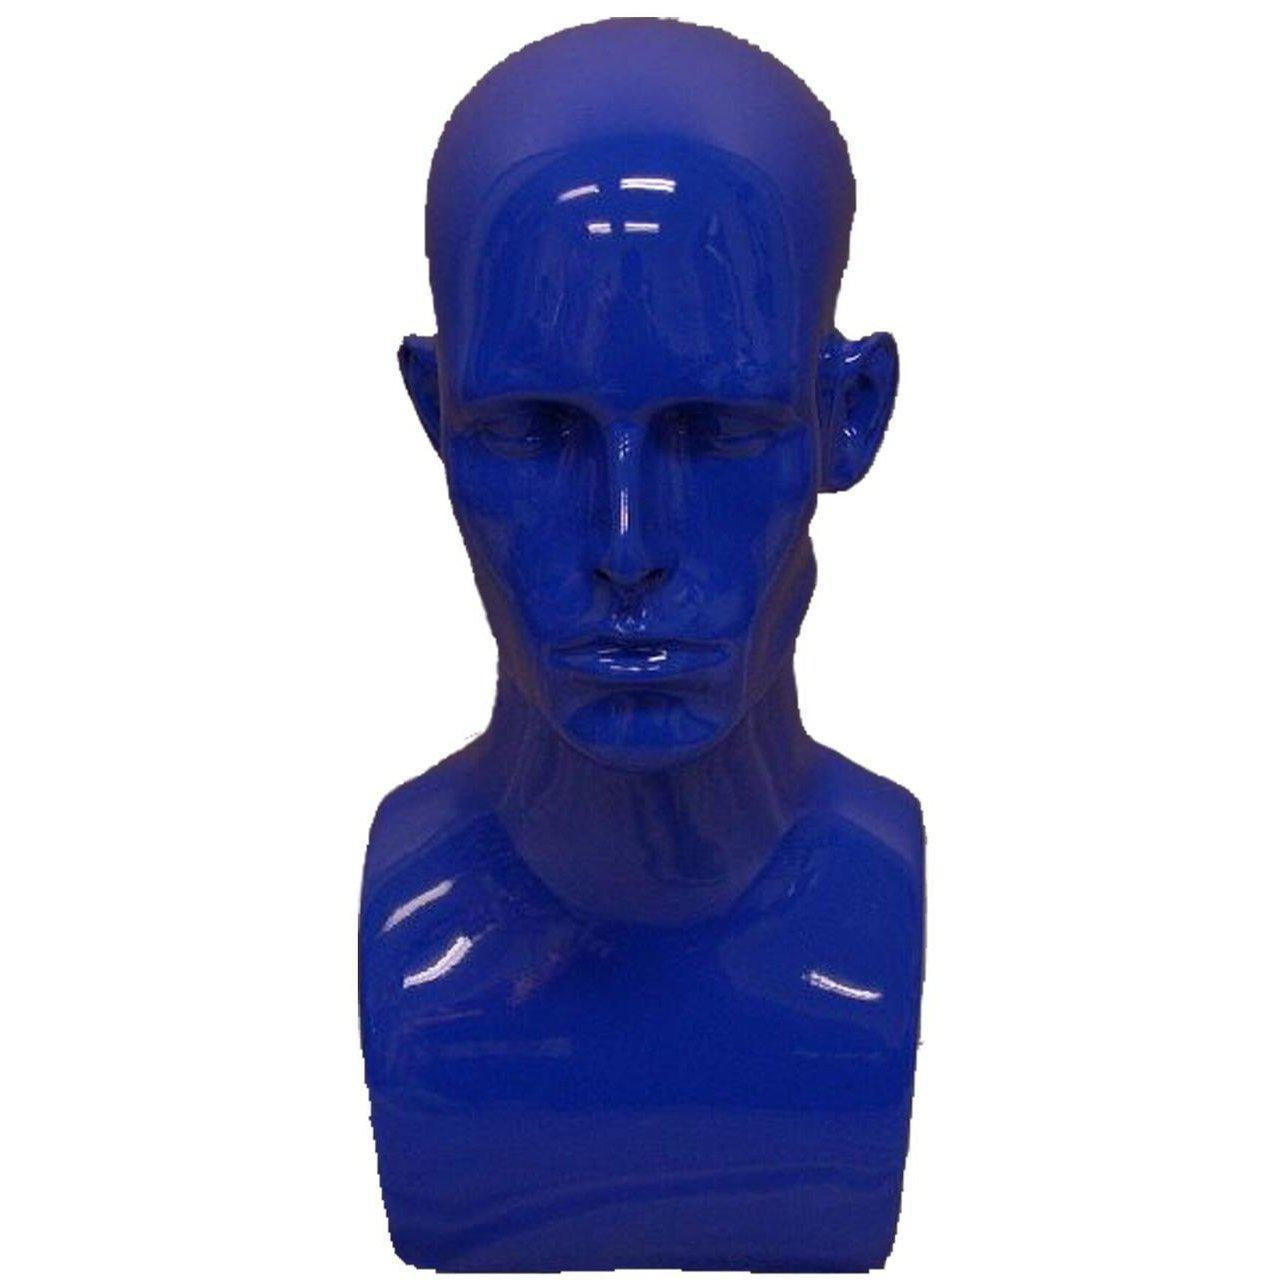 Mannequin Mall Male Mannequin Head MM-MDERABLUE For Fashion Stores and Retail Shops